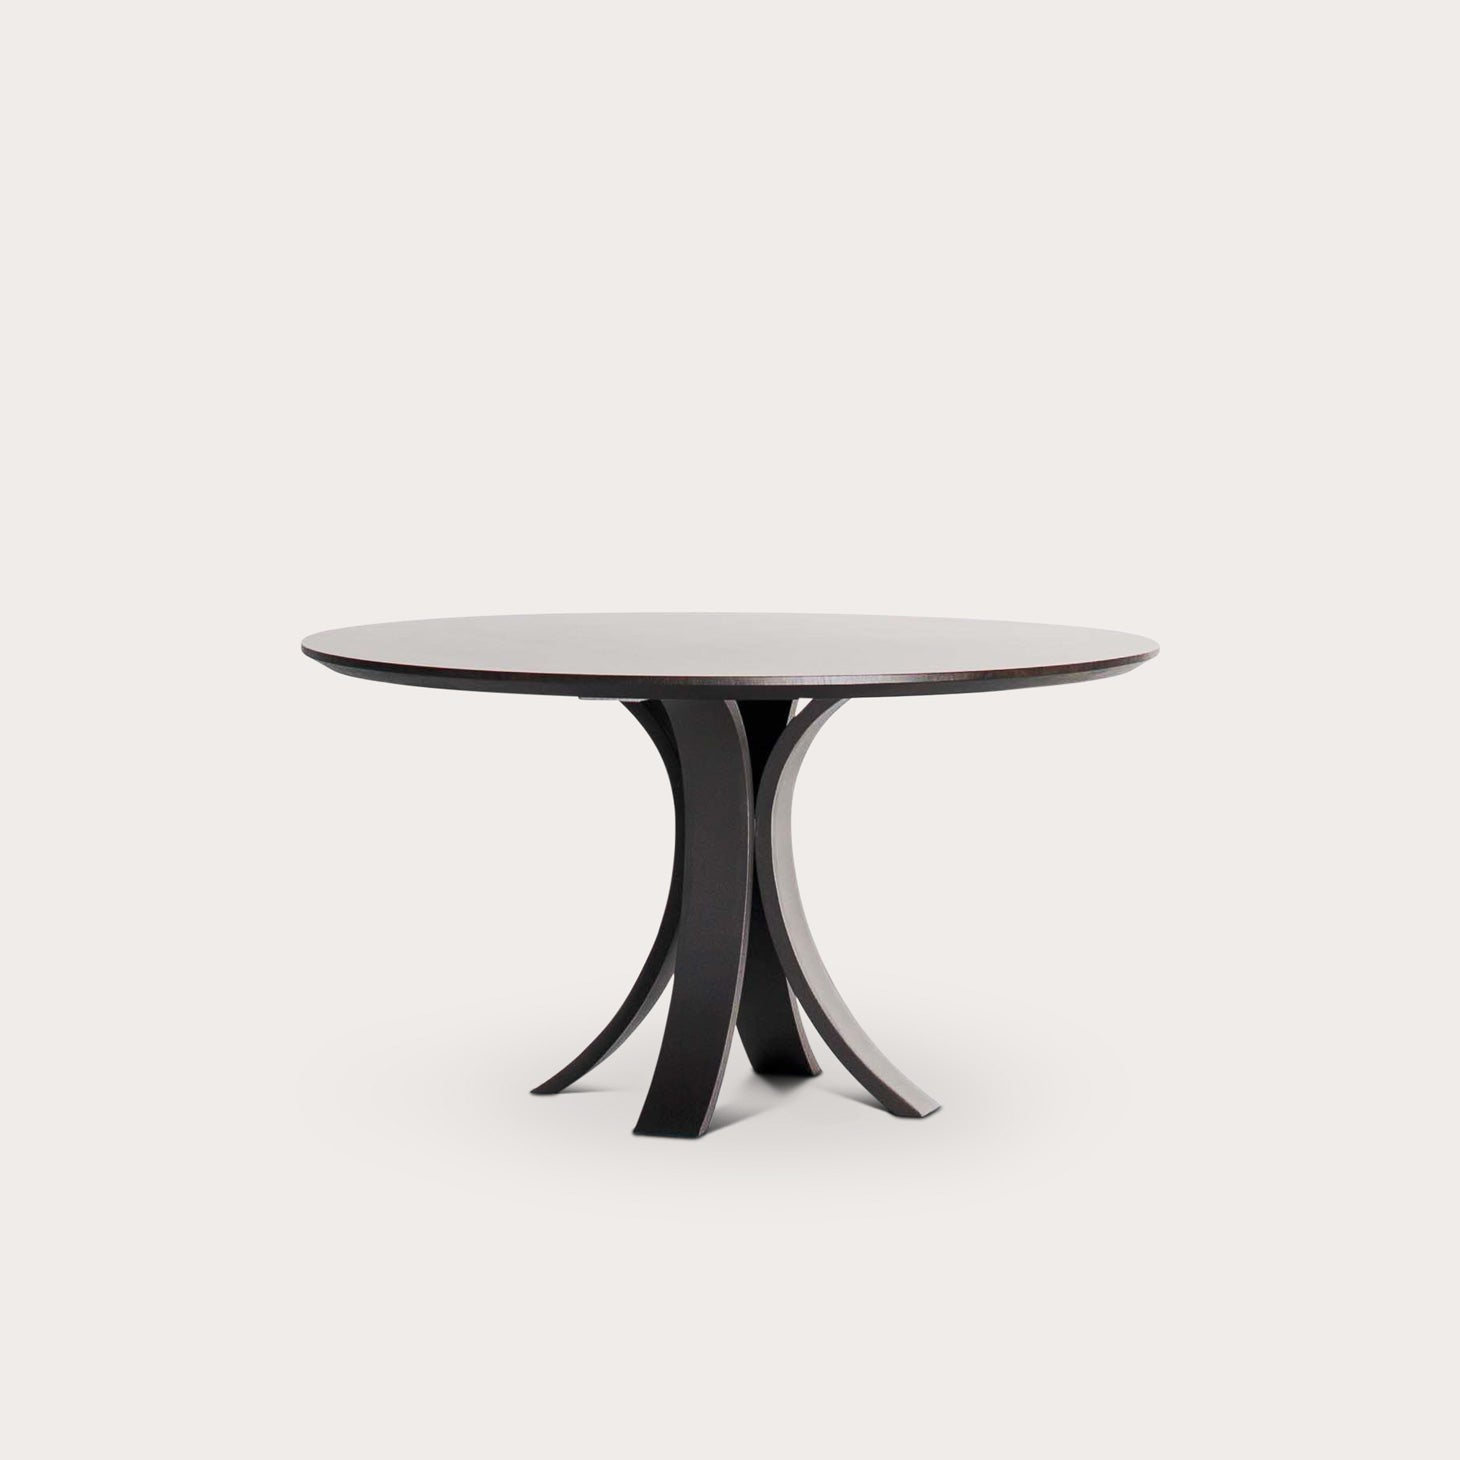 Kops Slim Tables Marlieke Van Rossum Designer Furniture Sku: 416-230-10200